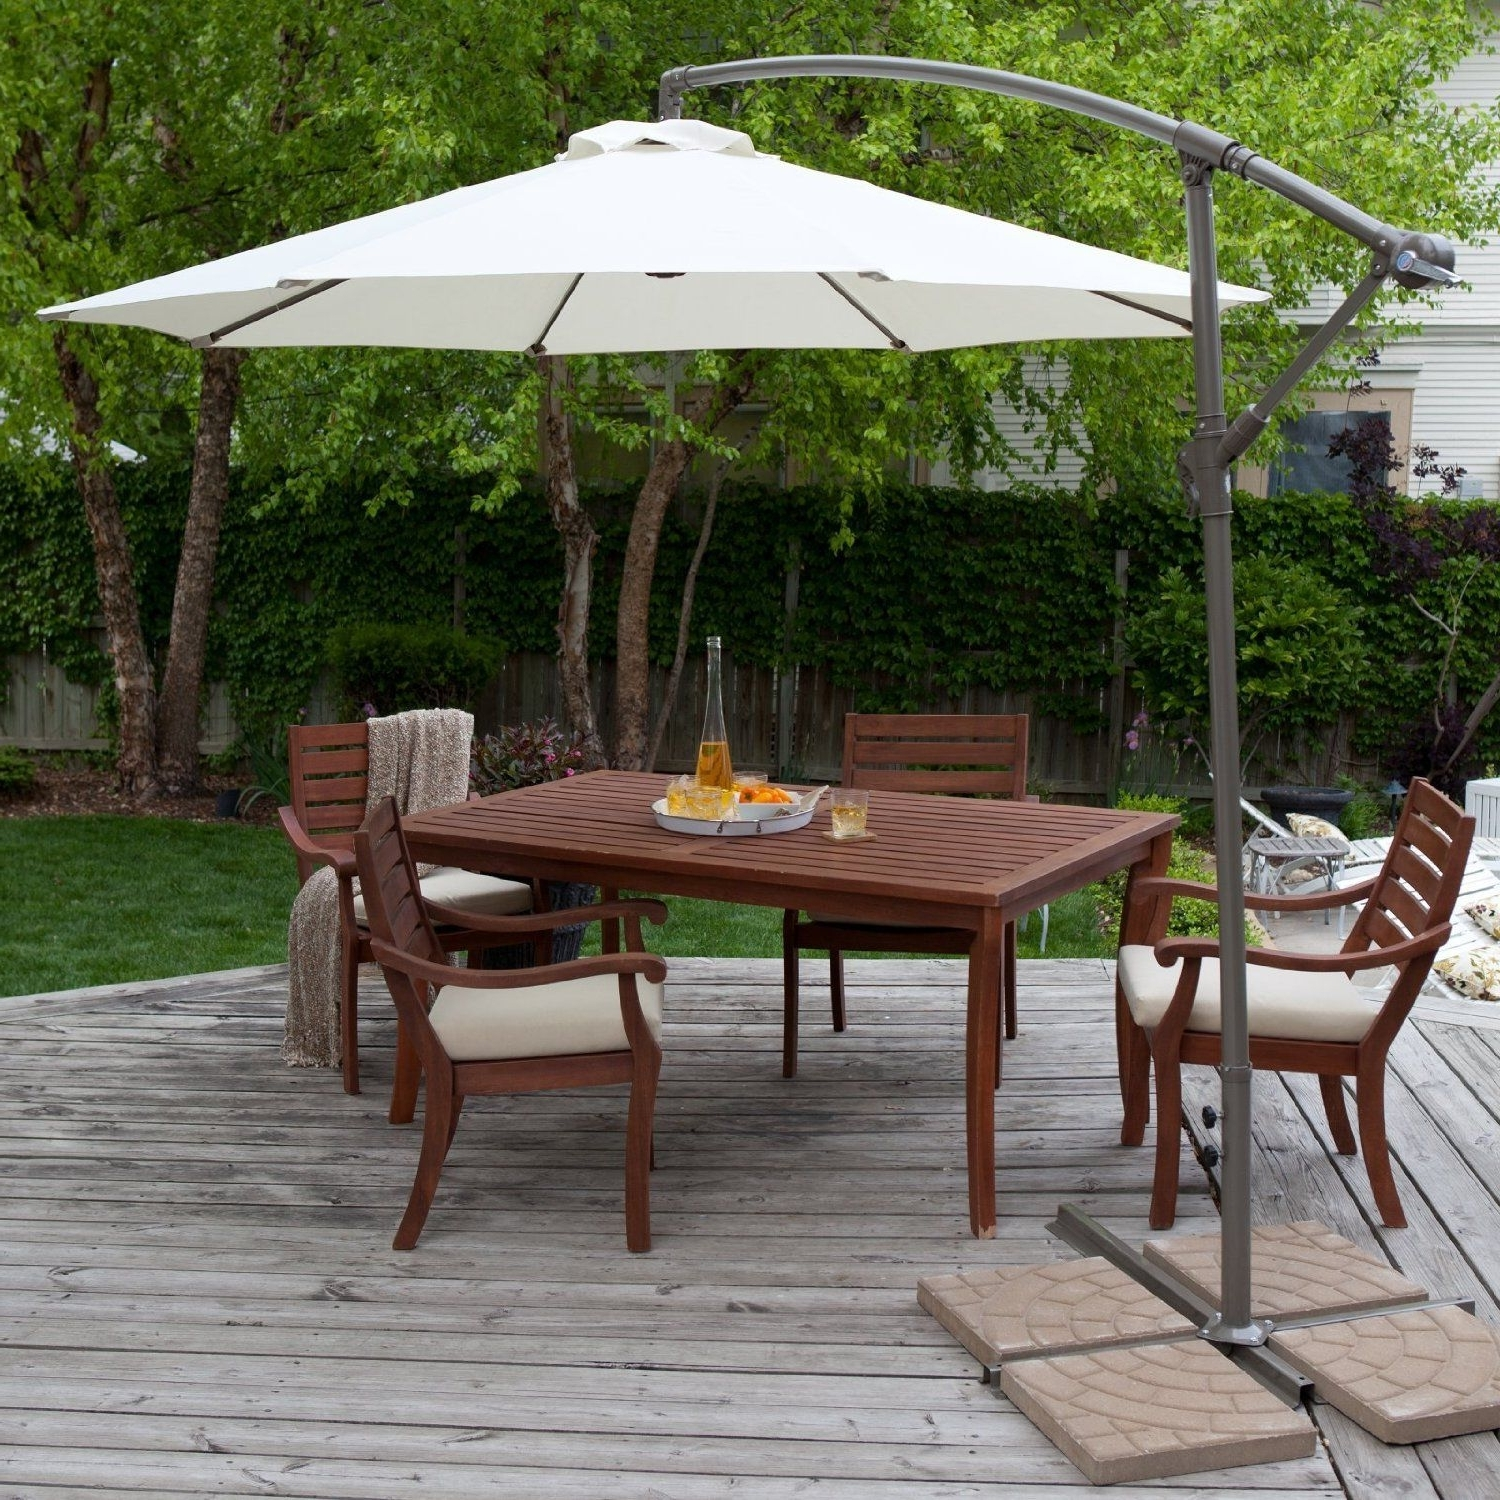 Coral Coast Offset Patio Umbrellas Intended For Best And Newest Large Patio Umbrellas: Large Patio Umbrellas Coral Coast ~ Home (Gallery 20 of 20)